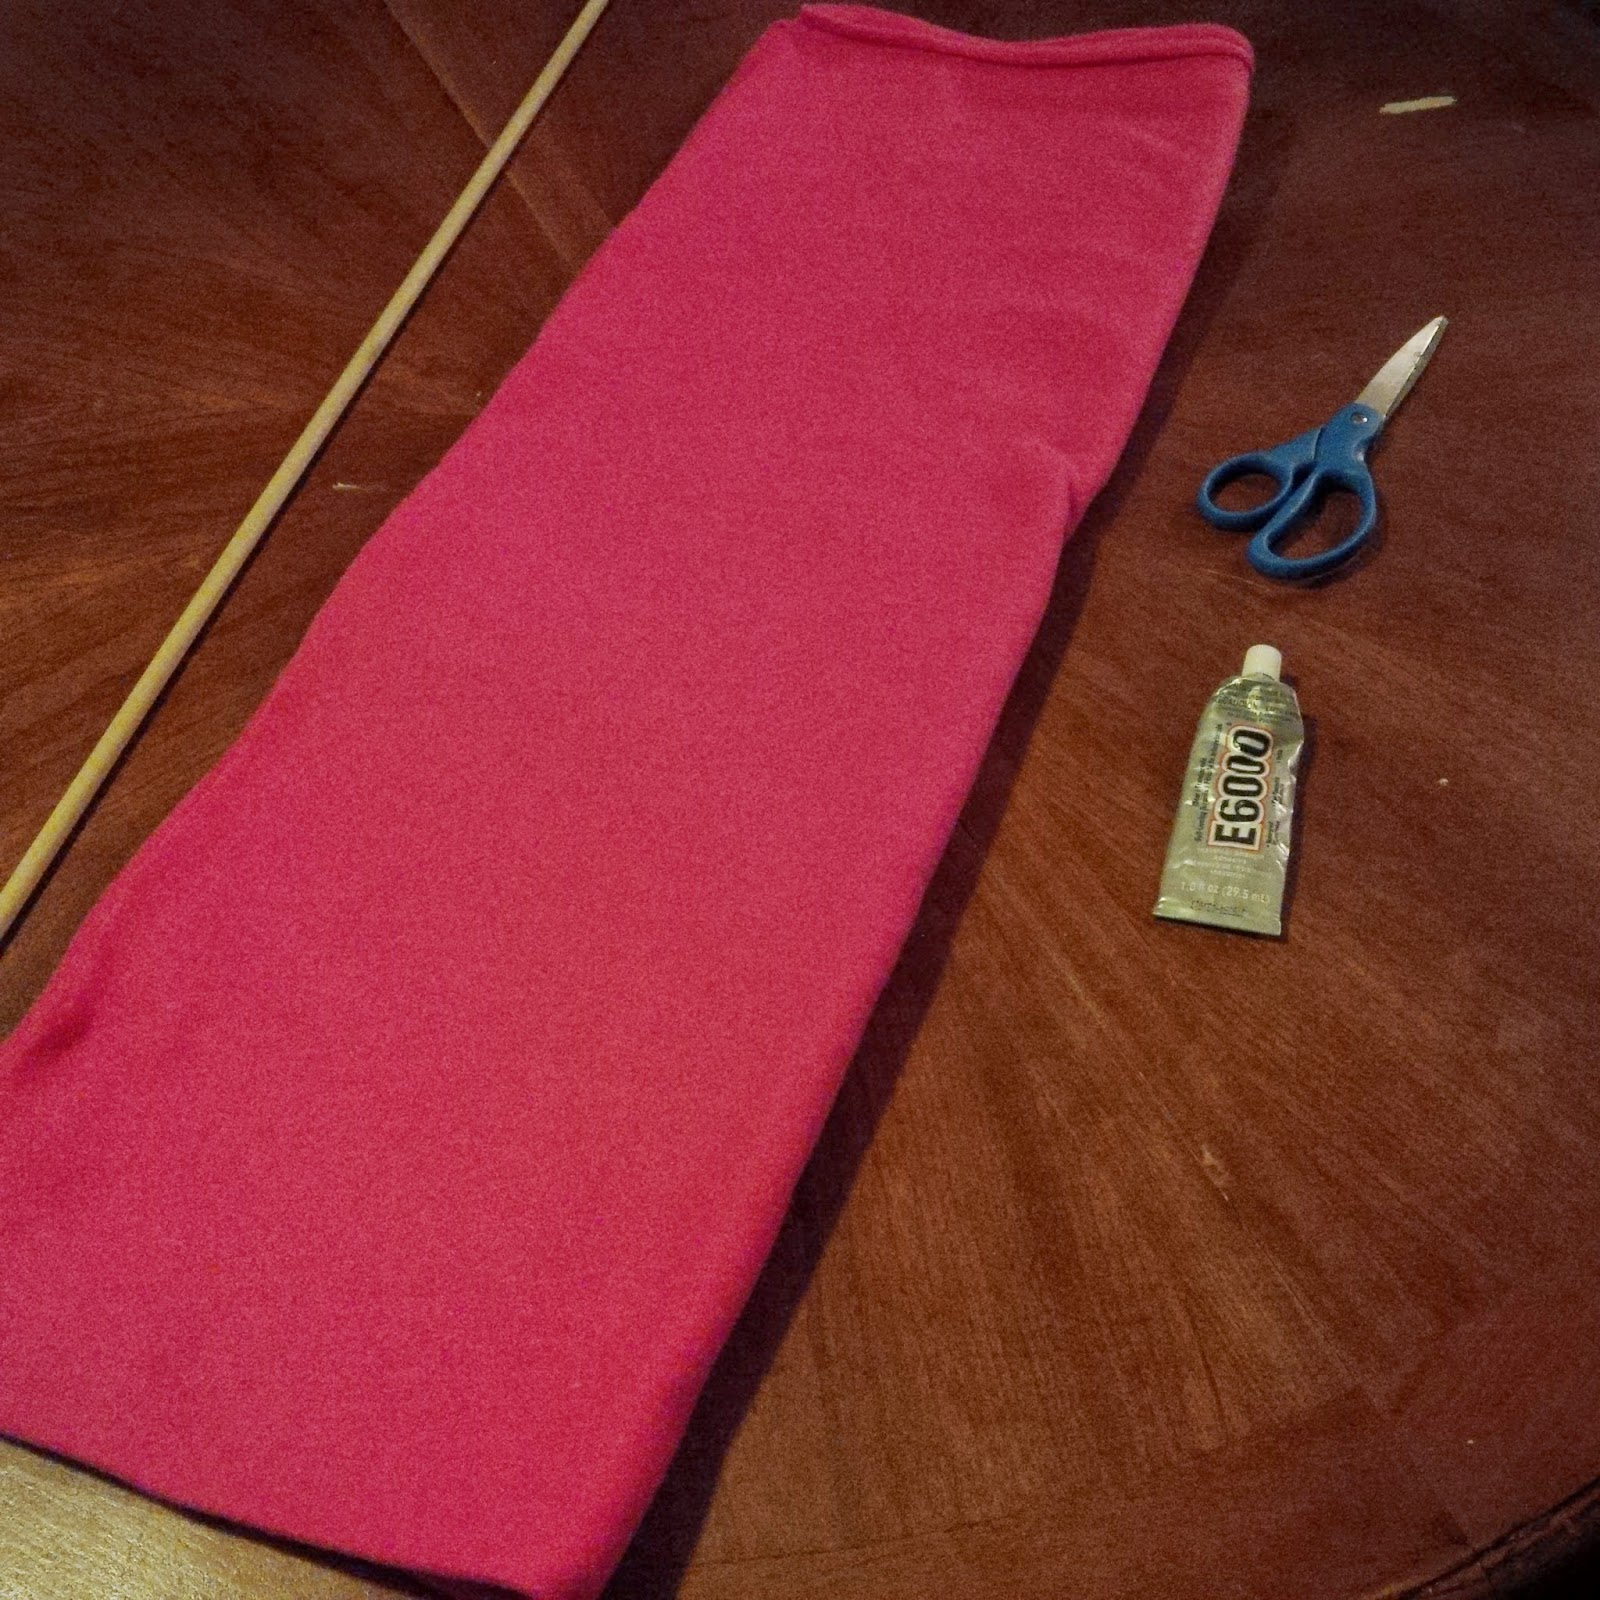 Fleece, wooden dowel rod, fabric glue, scissors for Keepers of the Faith Banner